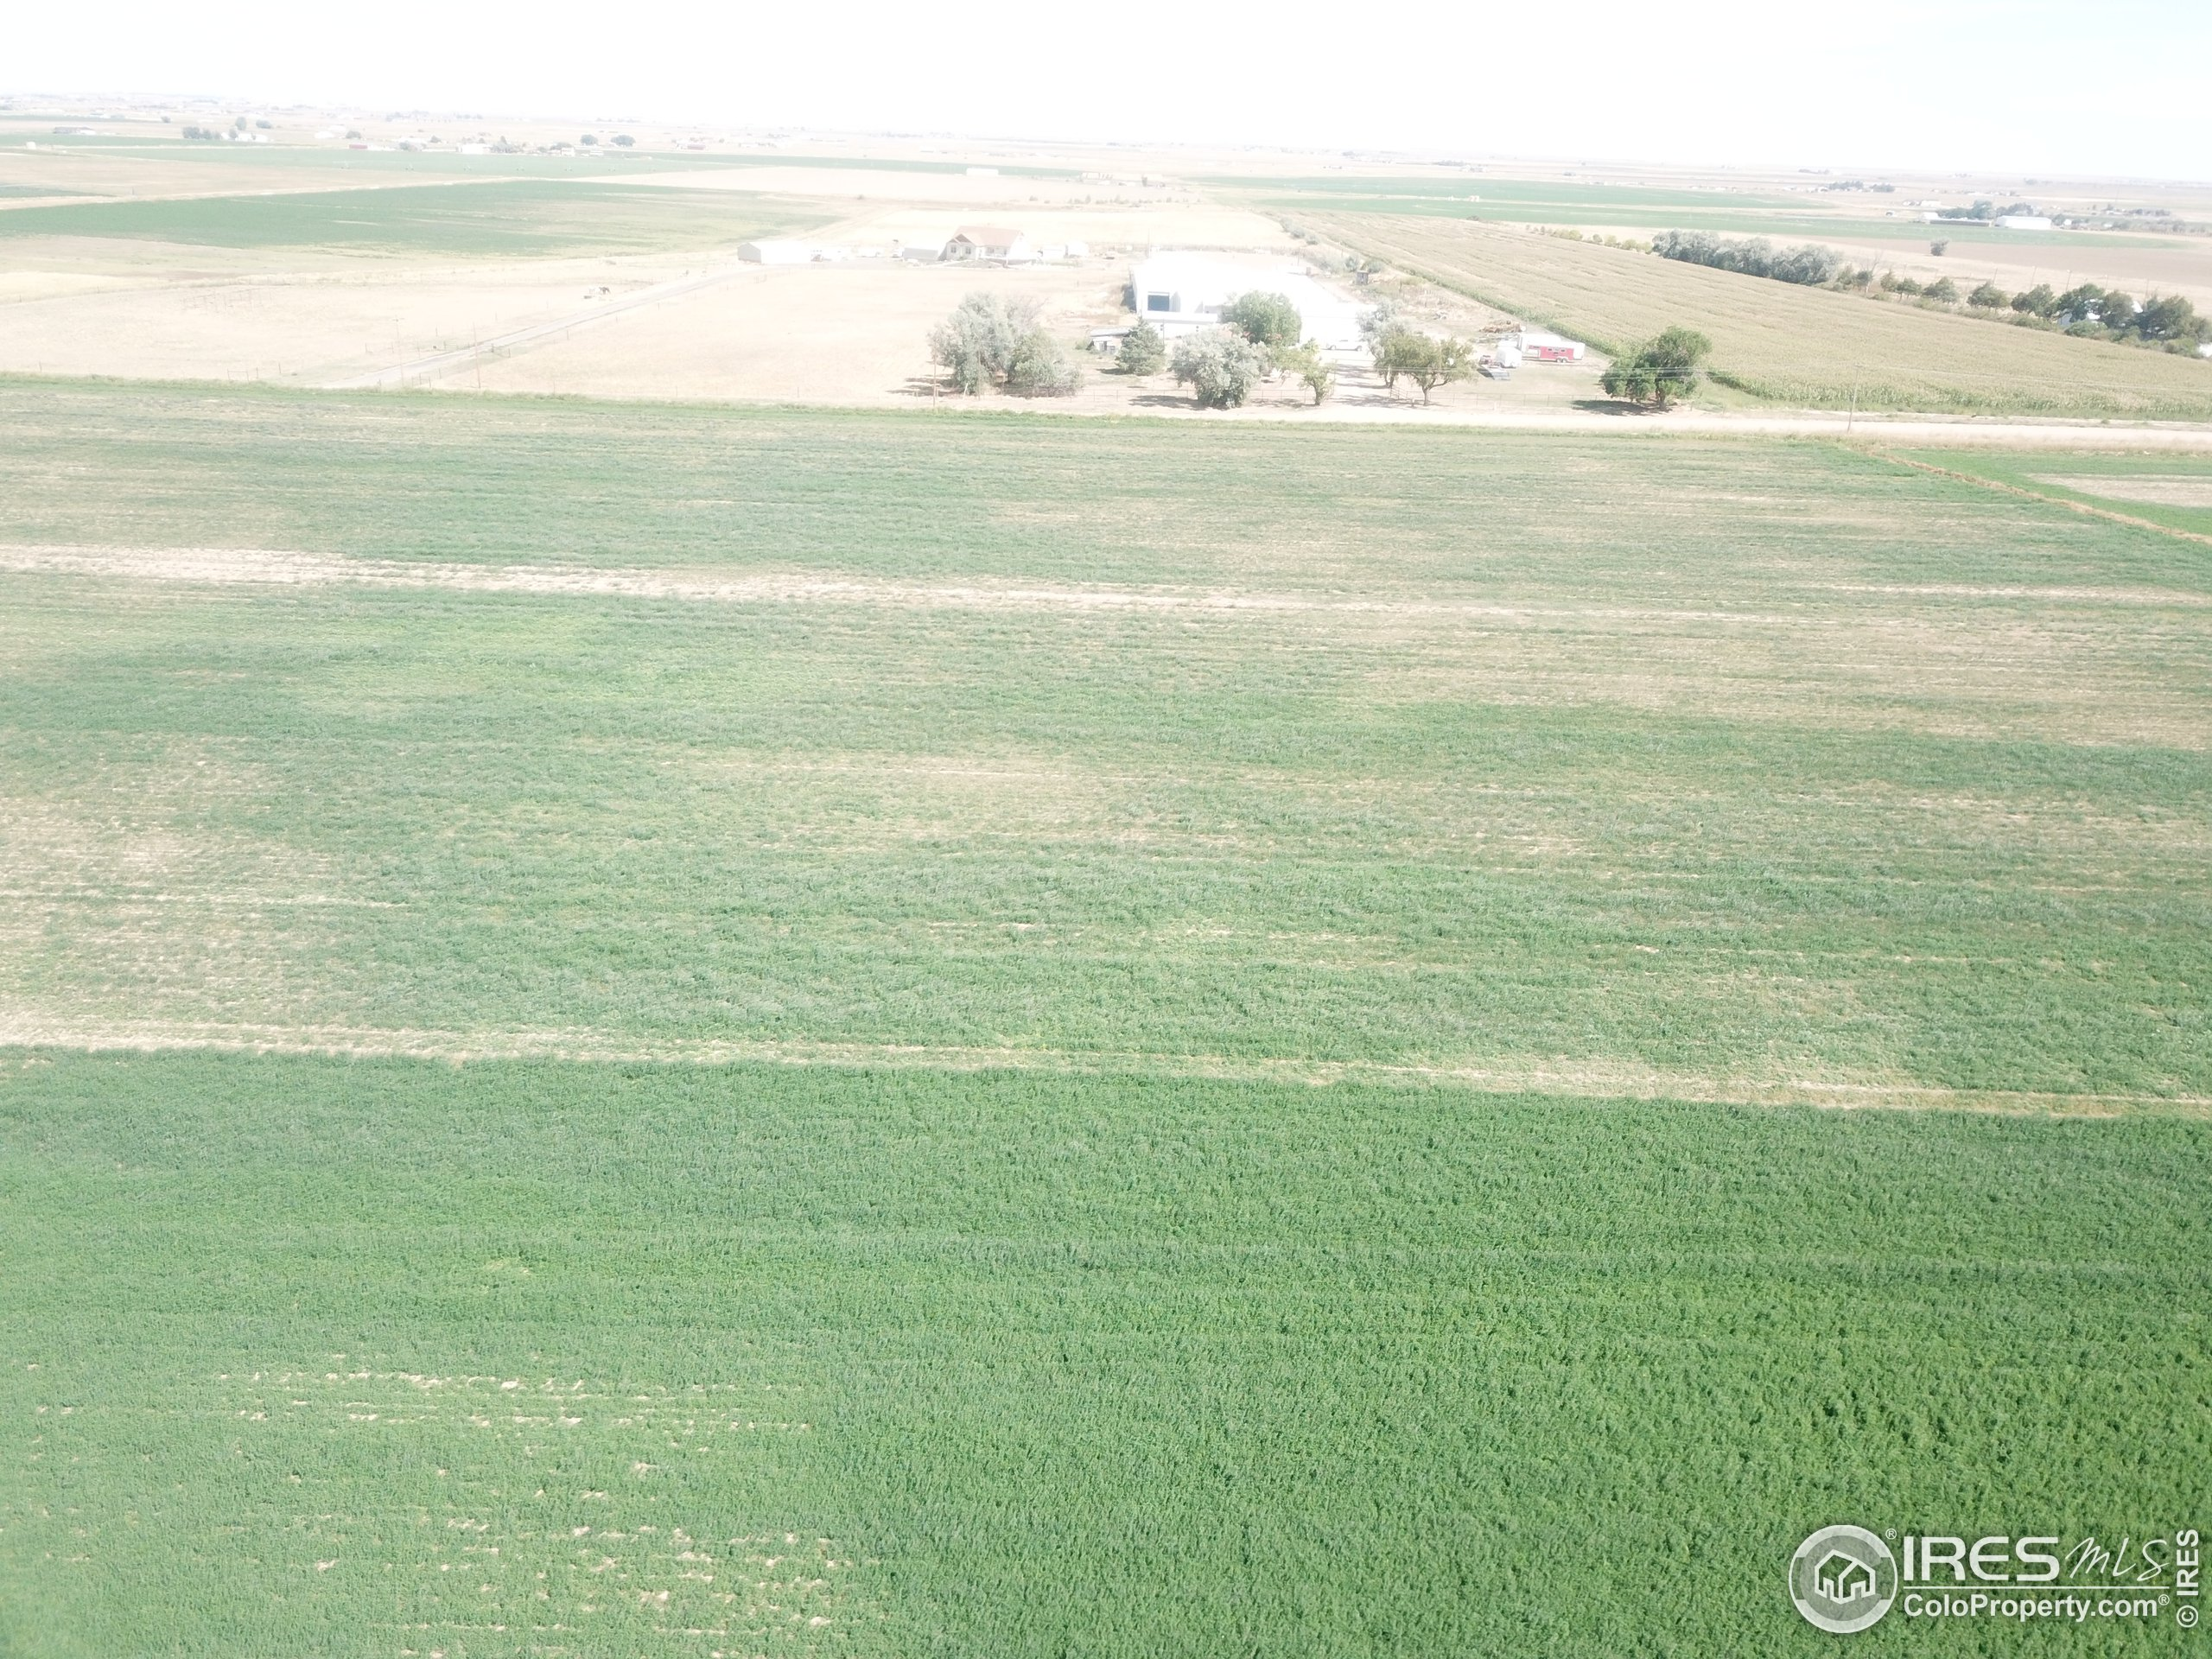 Lower part of photo is property west of CR 59